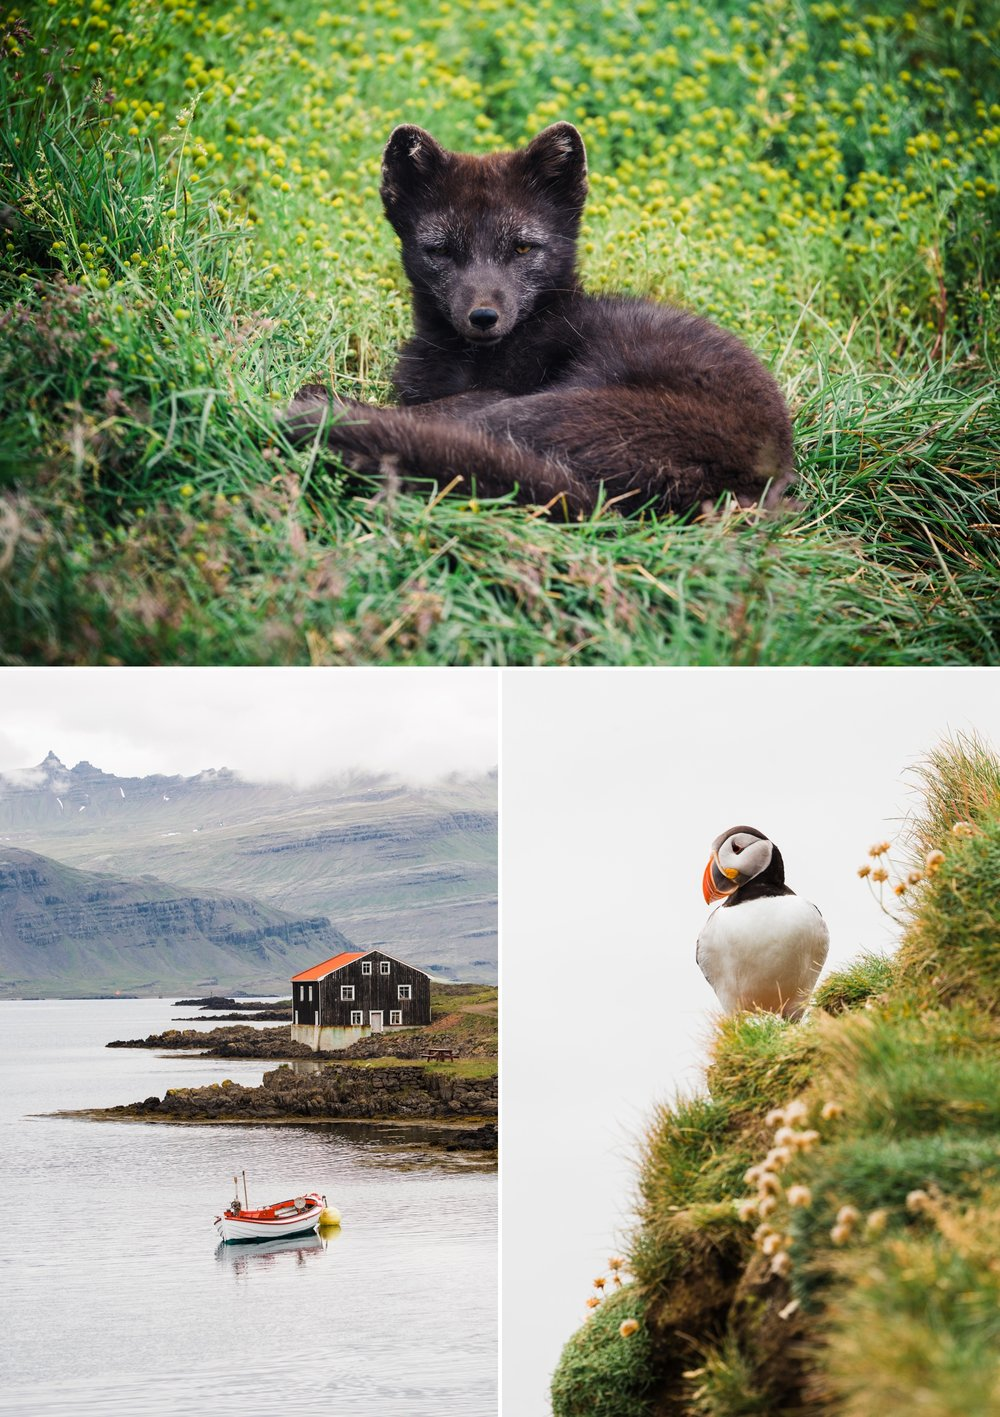 8-iceland-wildlife-arctic-fox-puffin.jpg